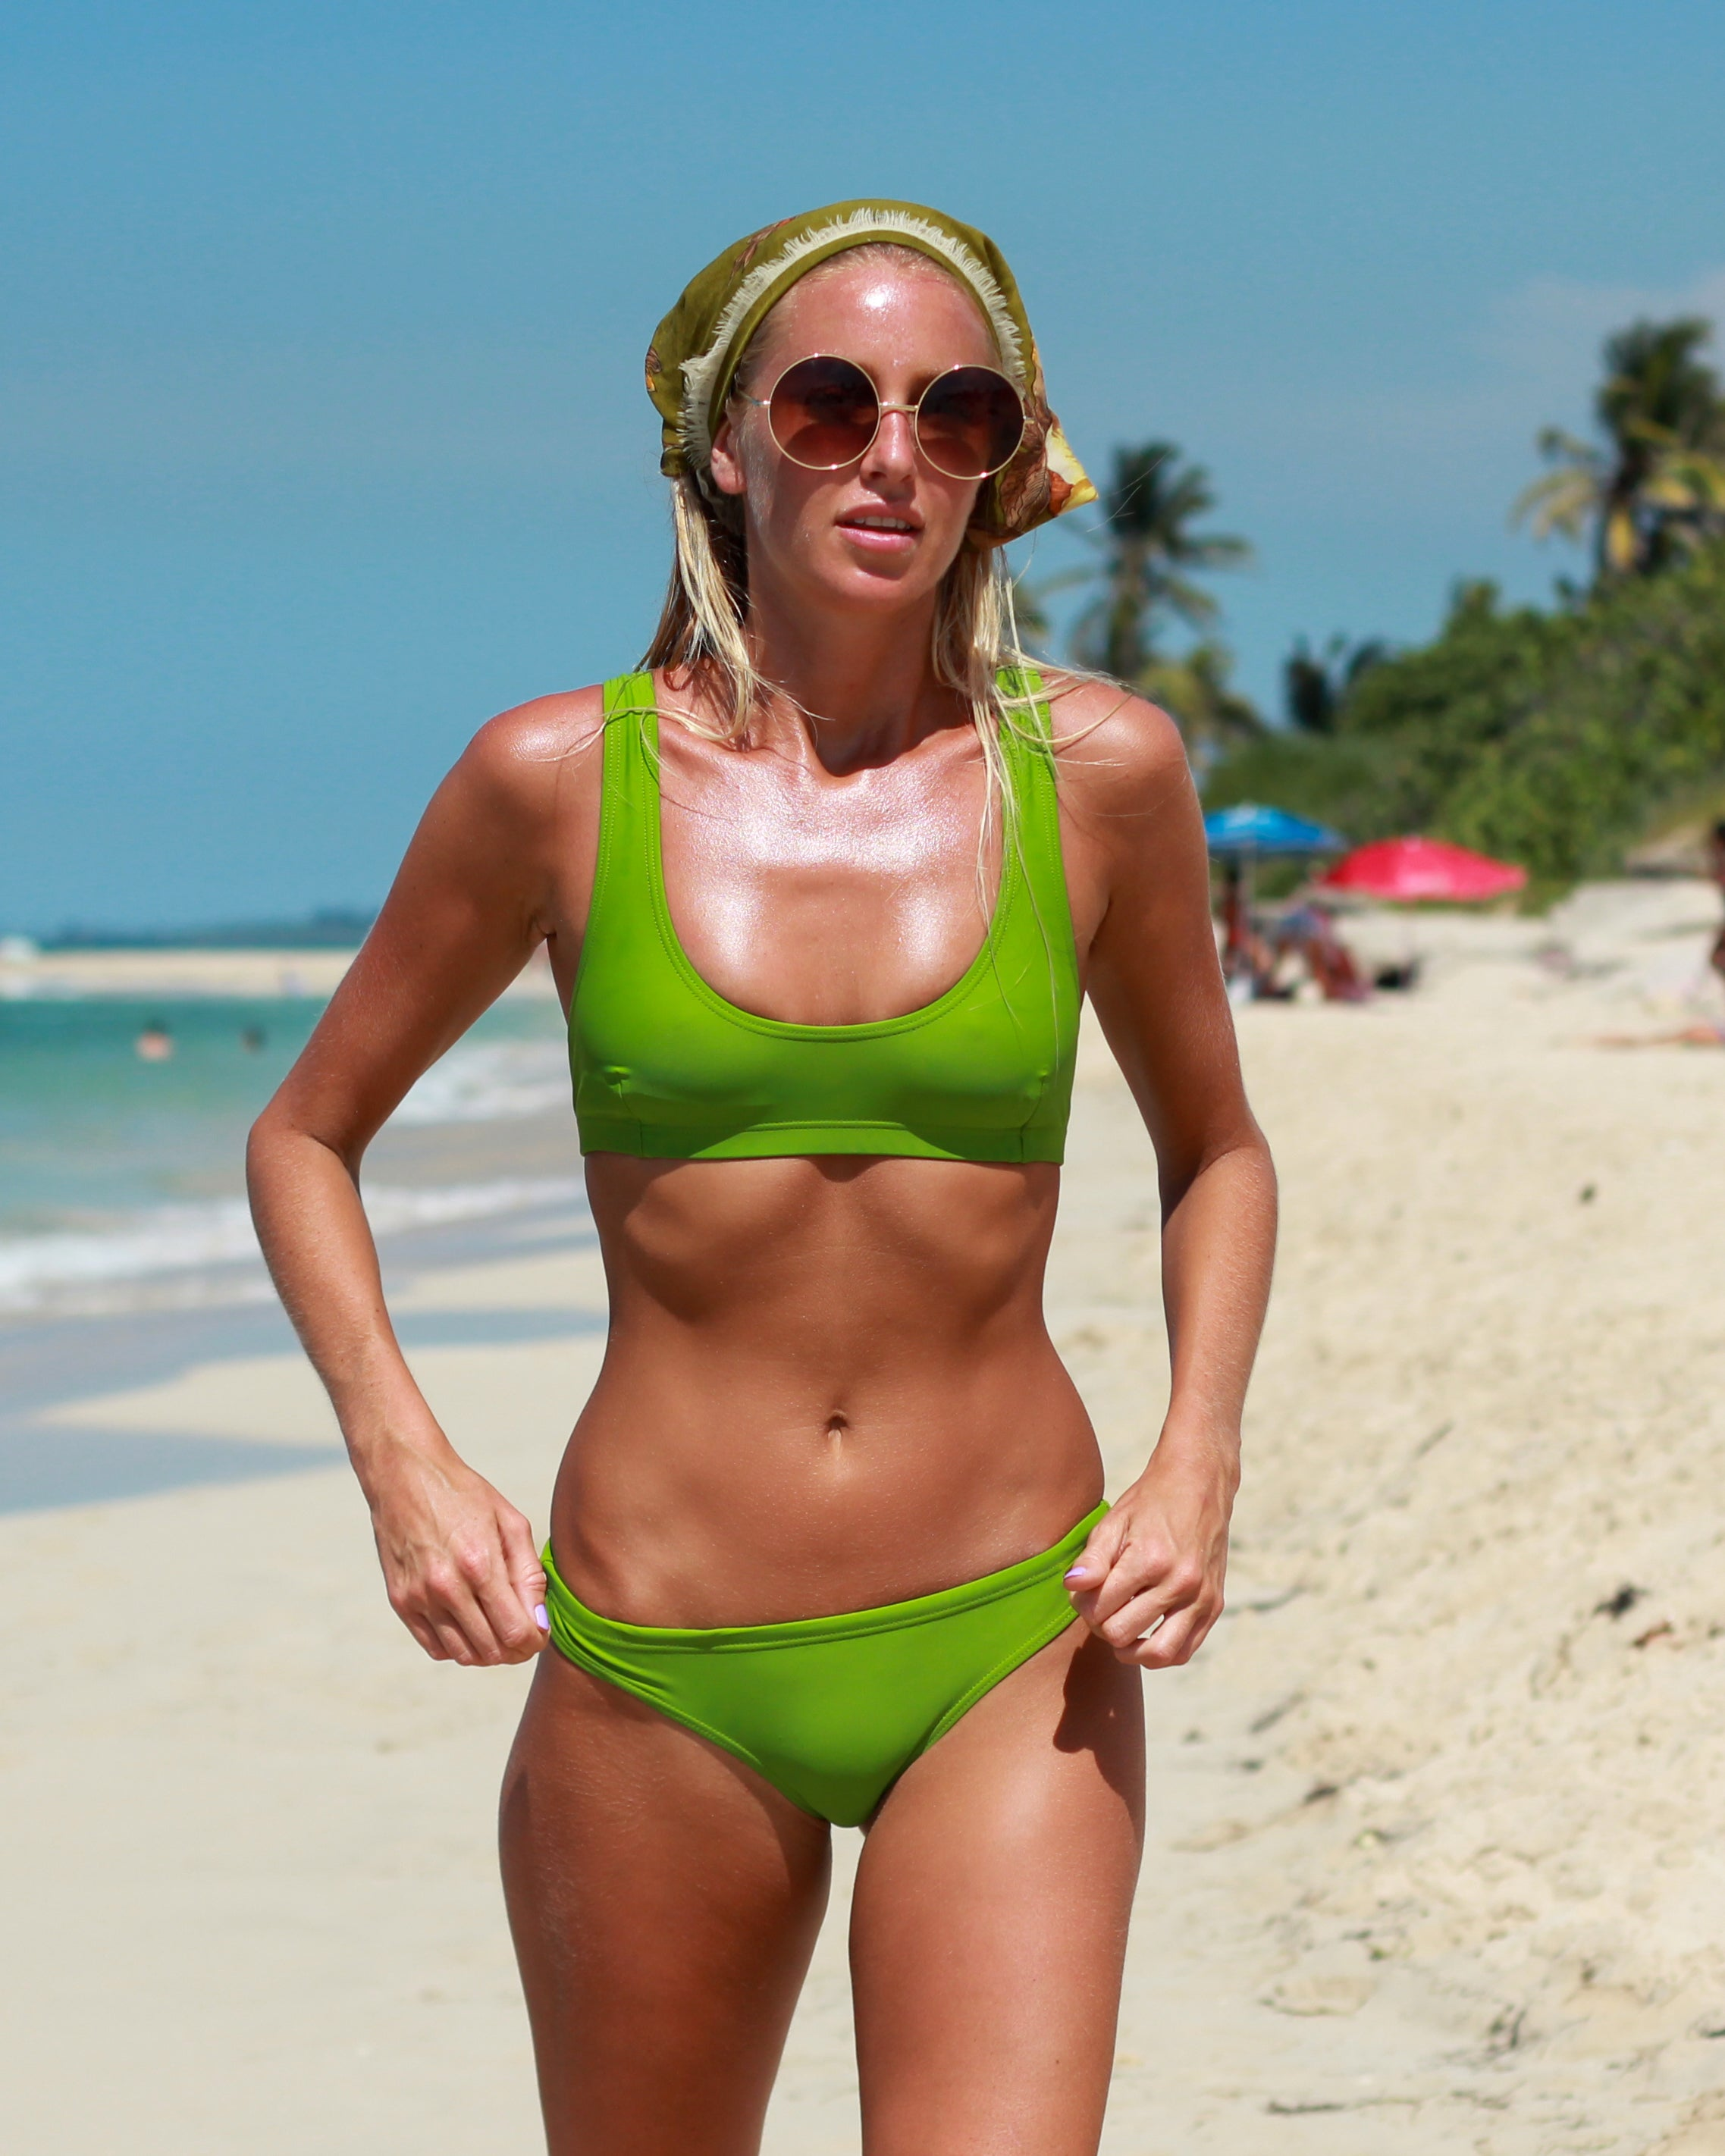 Santana Top - Moss - cheeky cut brazilian surf bikinis Cenote Swimwear that stays on in the surf